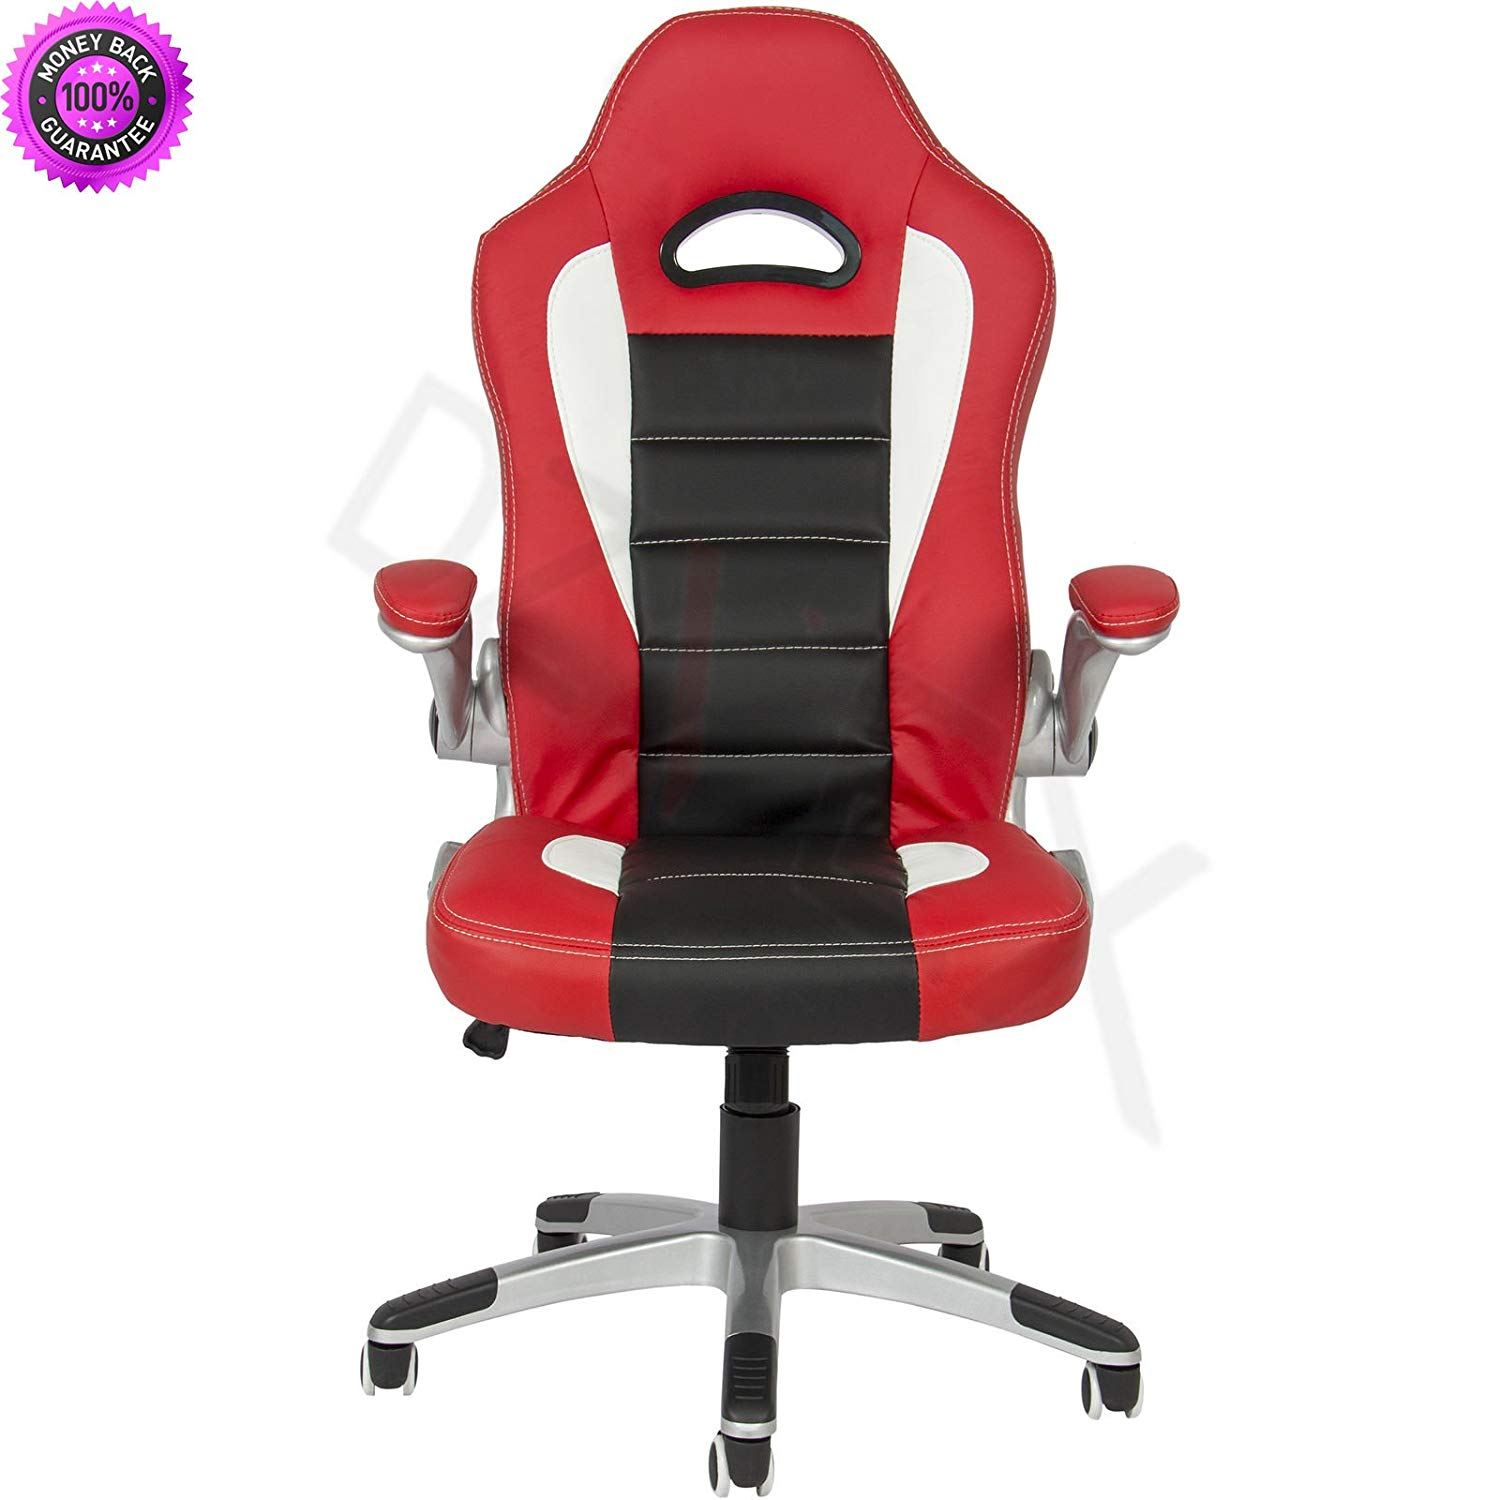 DzVeX_Executive Office Chair PU Leather Racing Style Bucket Desk Seat Chair - Red And stacking chairs waiting room chairs office furniture chair mats for carpet chairs for sale cheap office chairs